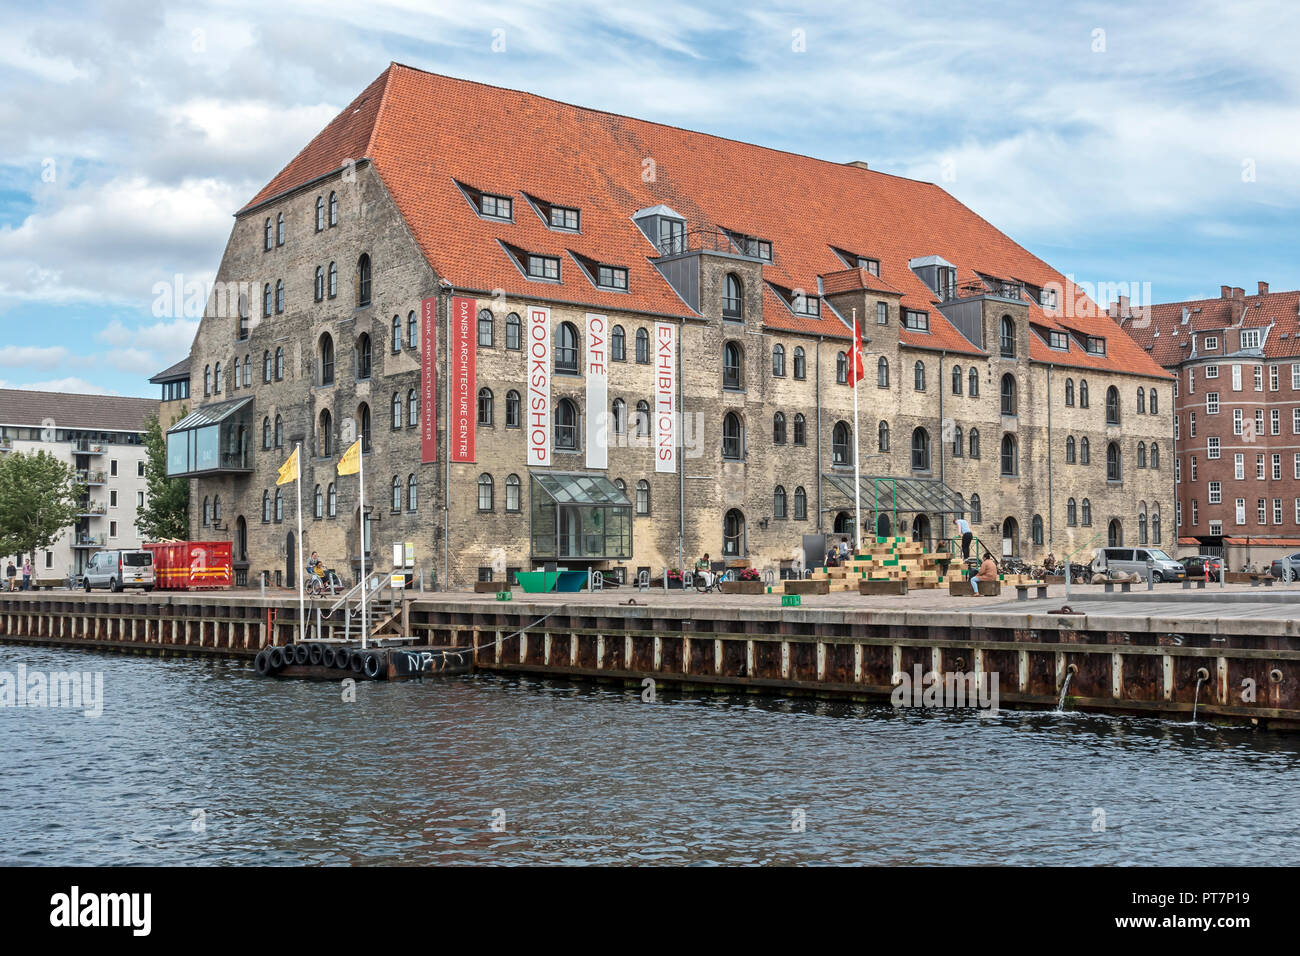 Danish Architecture Centre (Dansk Arkitektur Center) Baadmandsstraede Copenhagen Harbour Denmark Europe - Stock Image